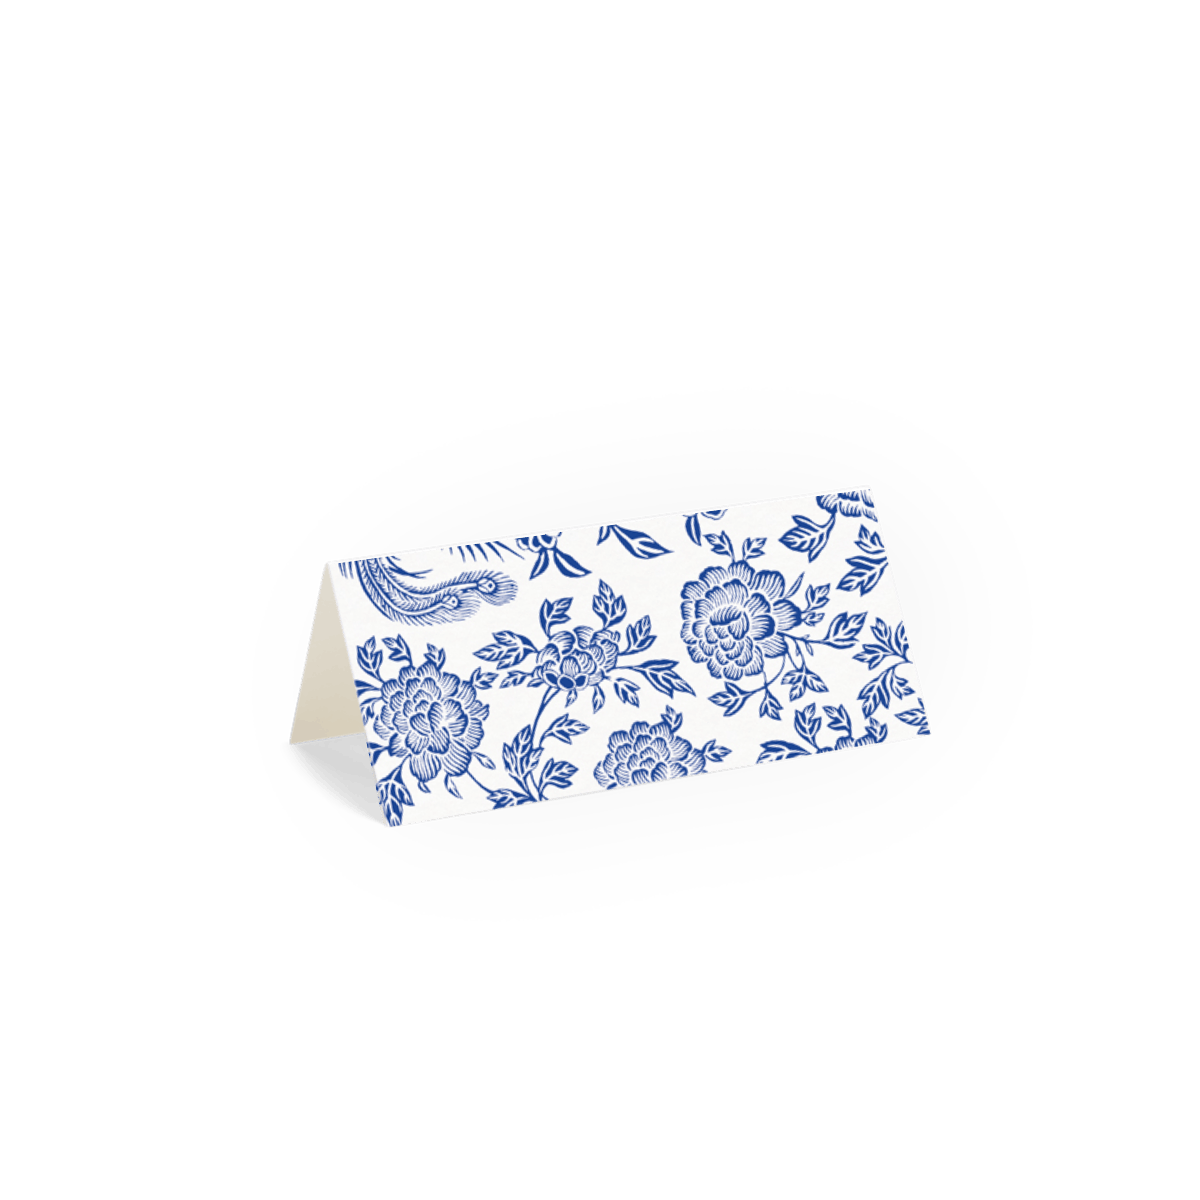 Https%3a%2f%2fwww.papier.com%2fproduct image%2f81462%2f15%2fornate blue florals 19559 back 1561976326.png?ixlib=rb 1.1